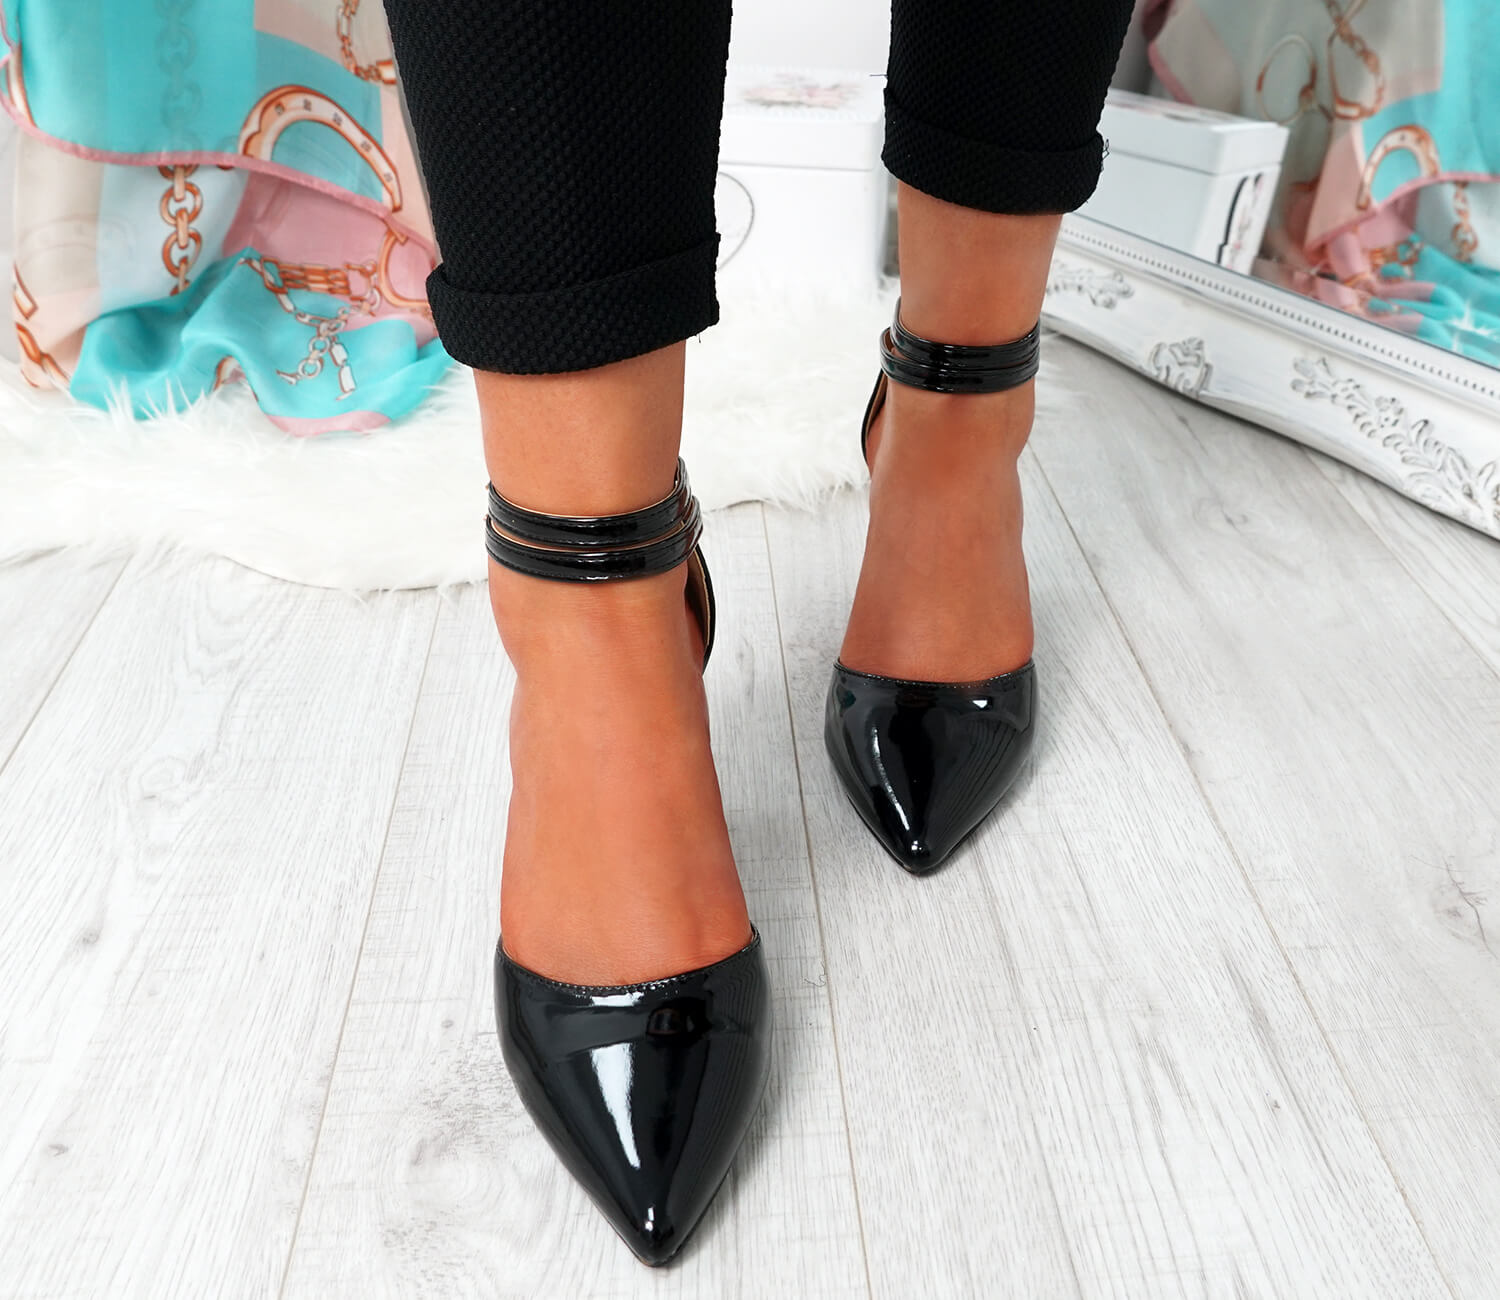 WOMENS-LADIES-ANKLE-DOUBLE-STRAP-HIGH-BLOCK-HEEL-POINTED-TOE-PARTY-SHOES-SIZE thumbnail 8